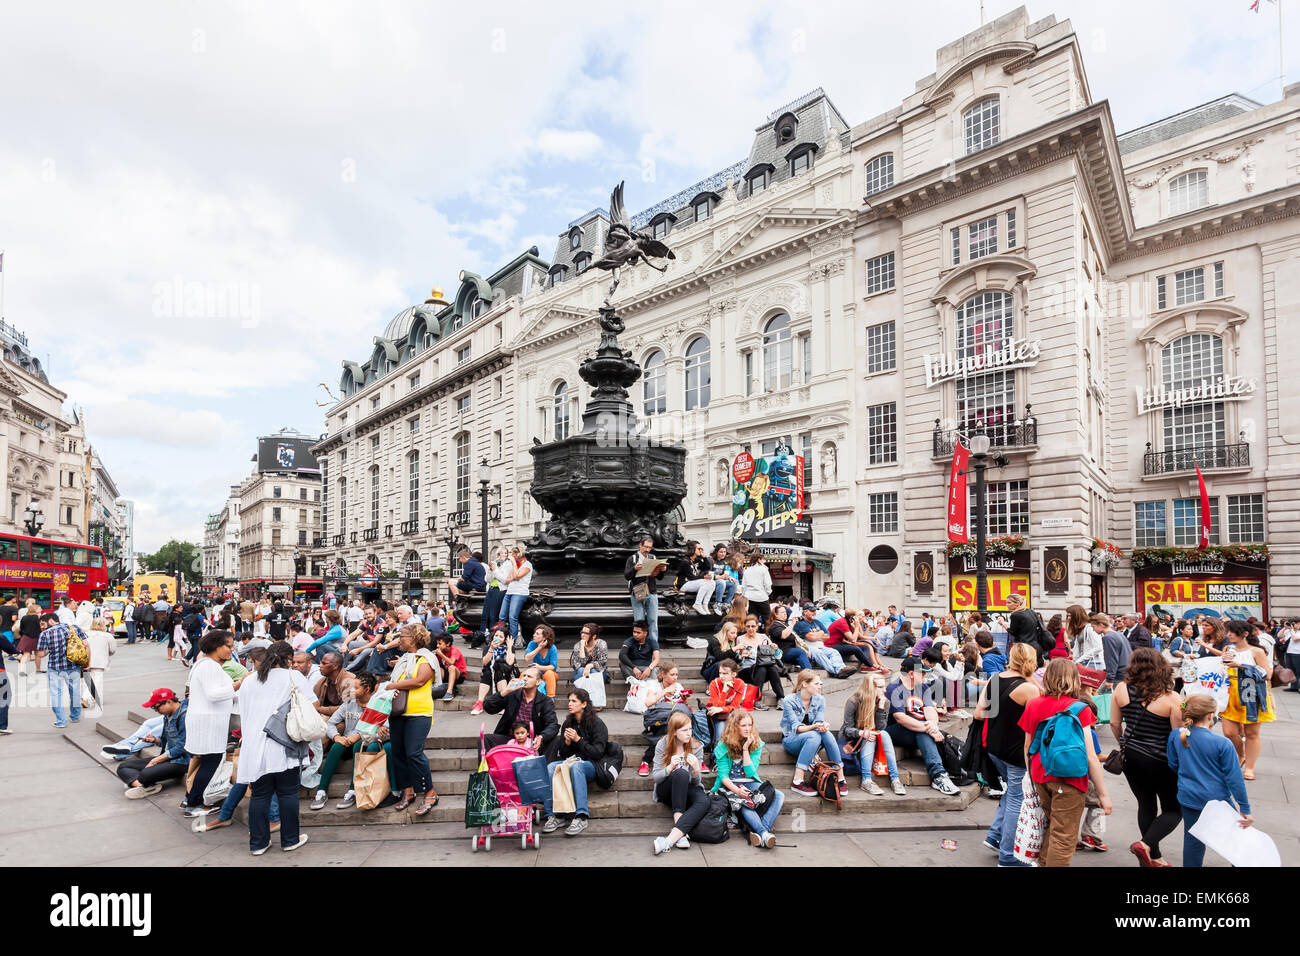 Piccadilly Circus, London, England, United Kingdom - Stock Image